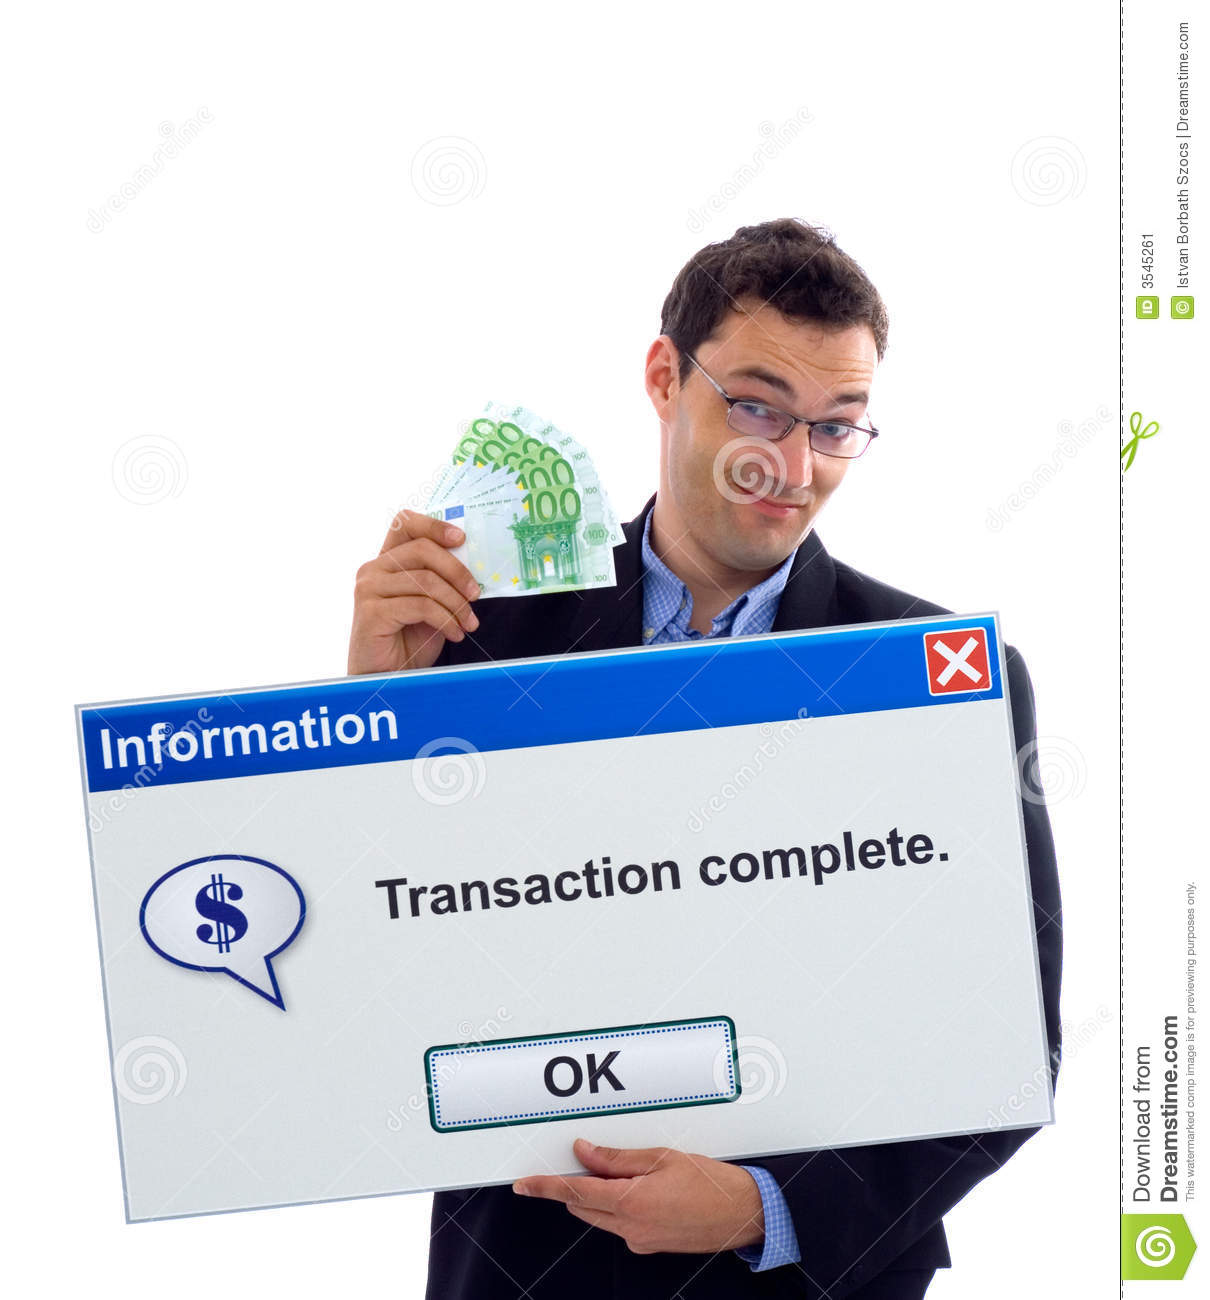 how to search in commbank for transaction